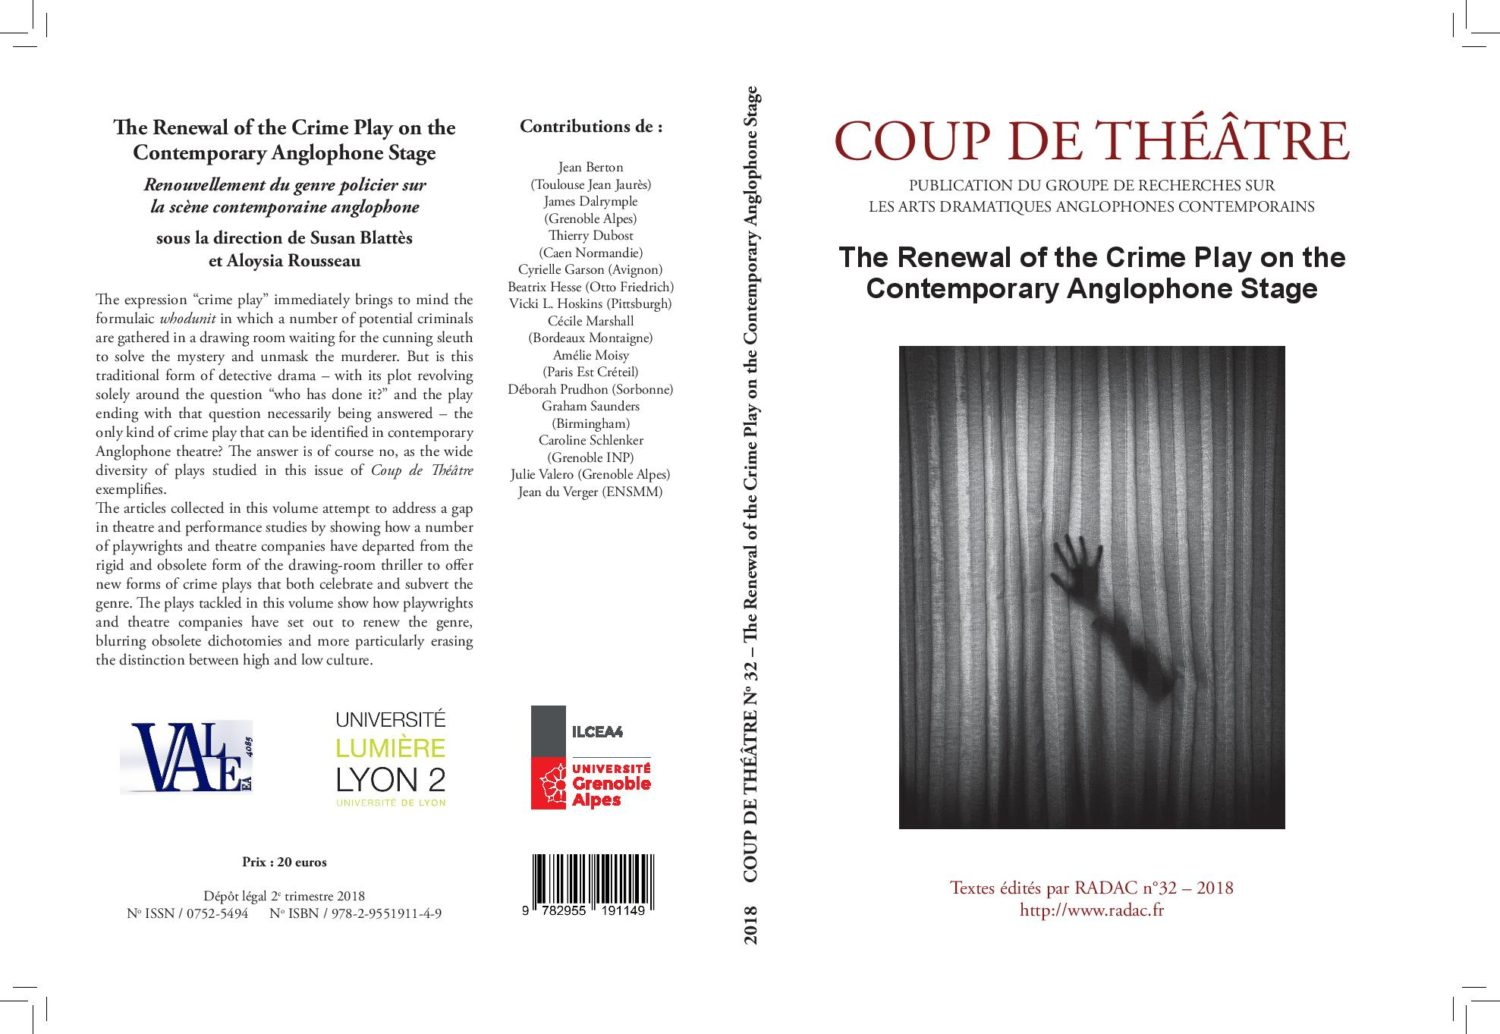 Publication: Aloysia Rousseau et Susan Blattes, éd., « The Renewal of the Crime Play », RADAC, 2018